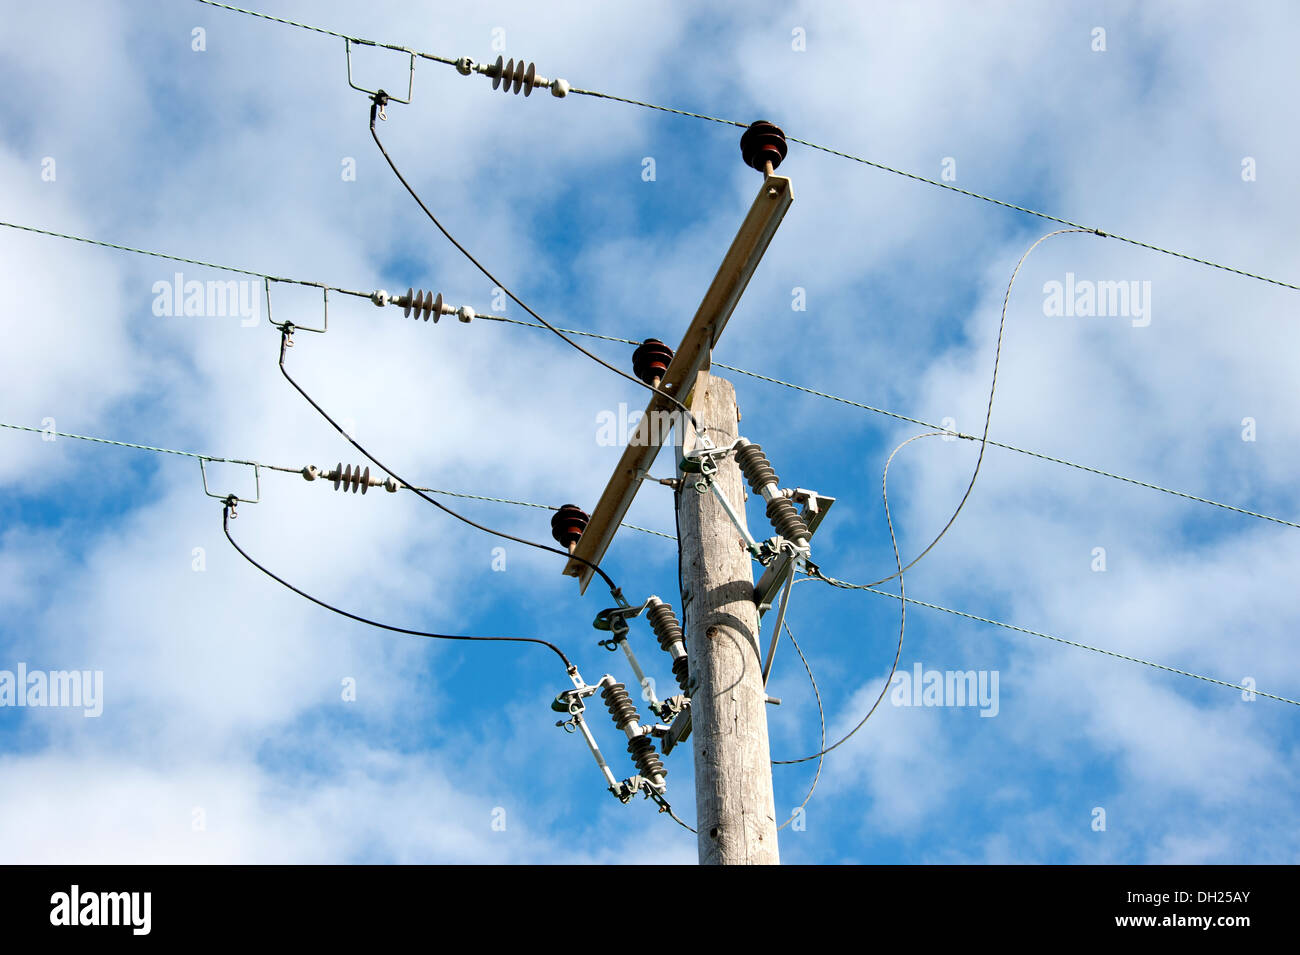 3 Phase High Voltage Electricity Wires Switchgear Stock Photo Three Electrical Wiring